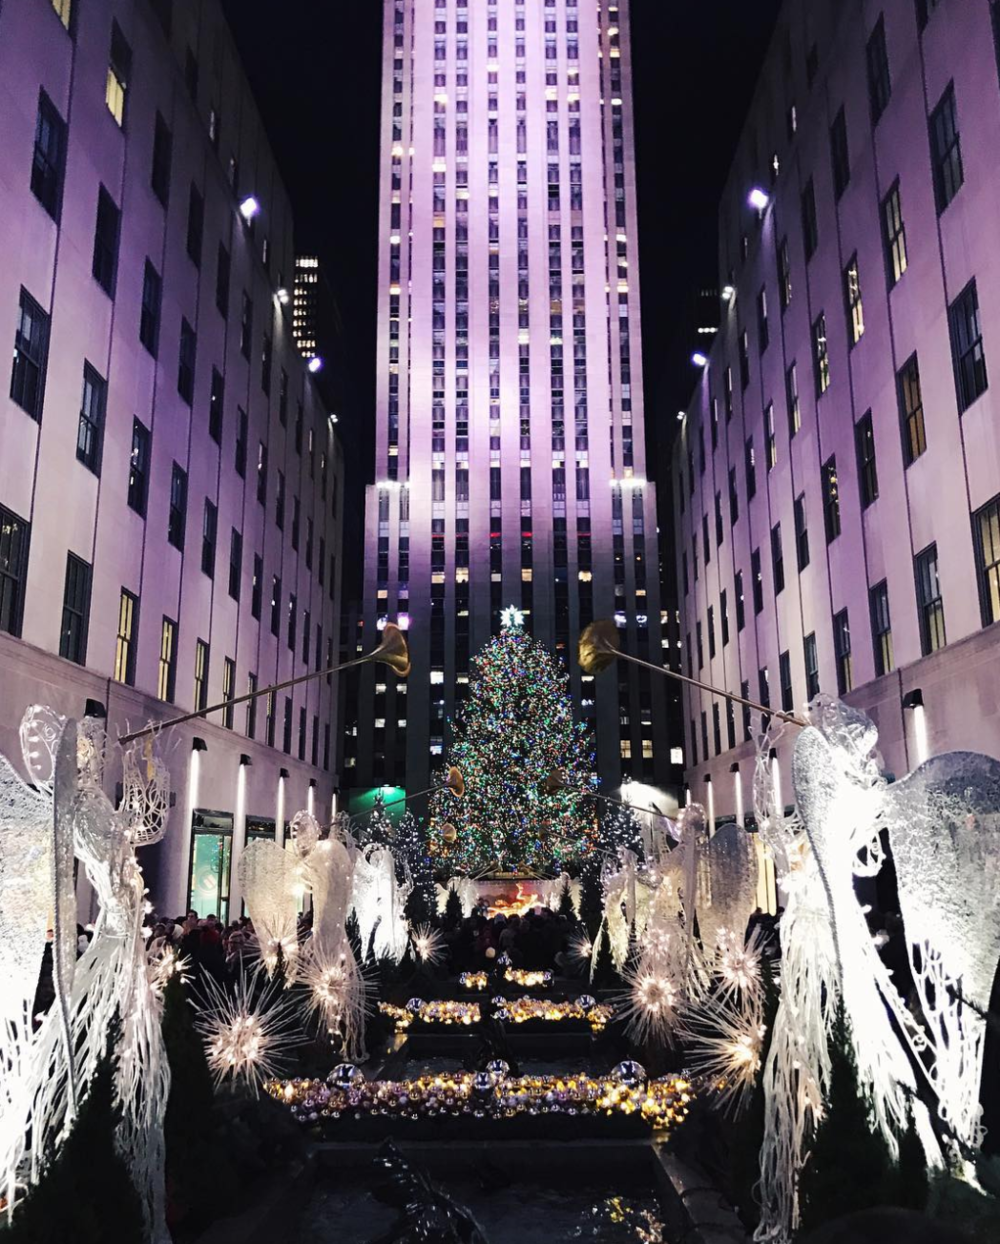 10. SEE: The legendary Christmas Tree at Rockefeller Center (A favorite of Kevin McAllister's)